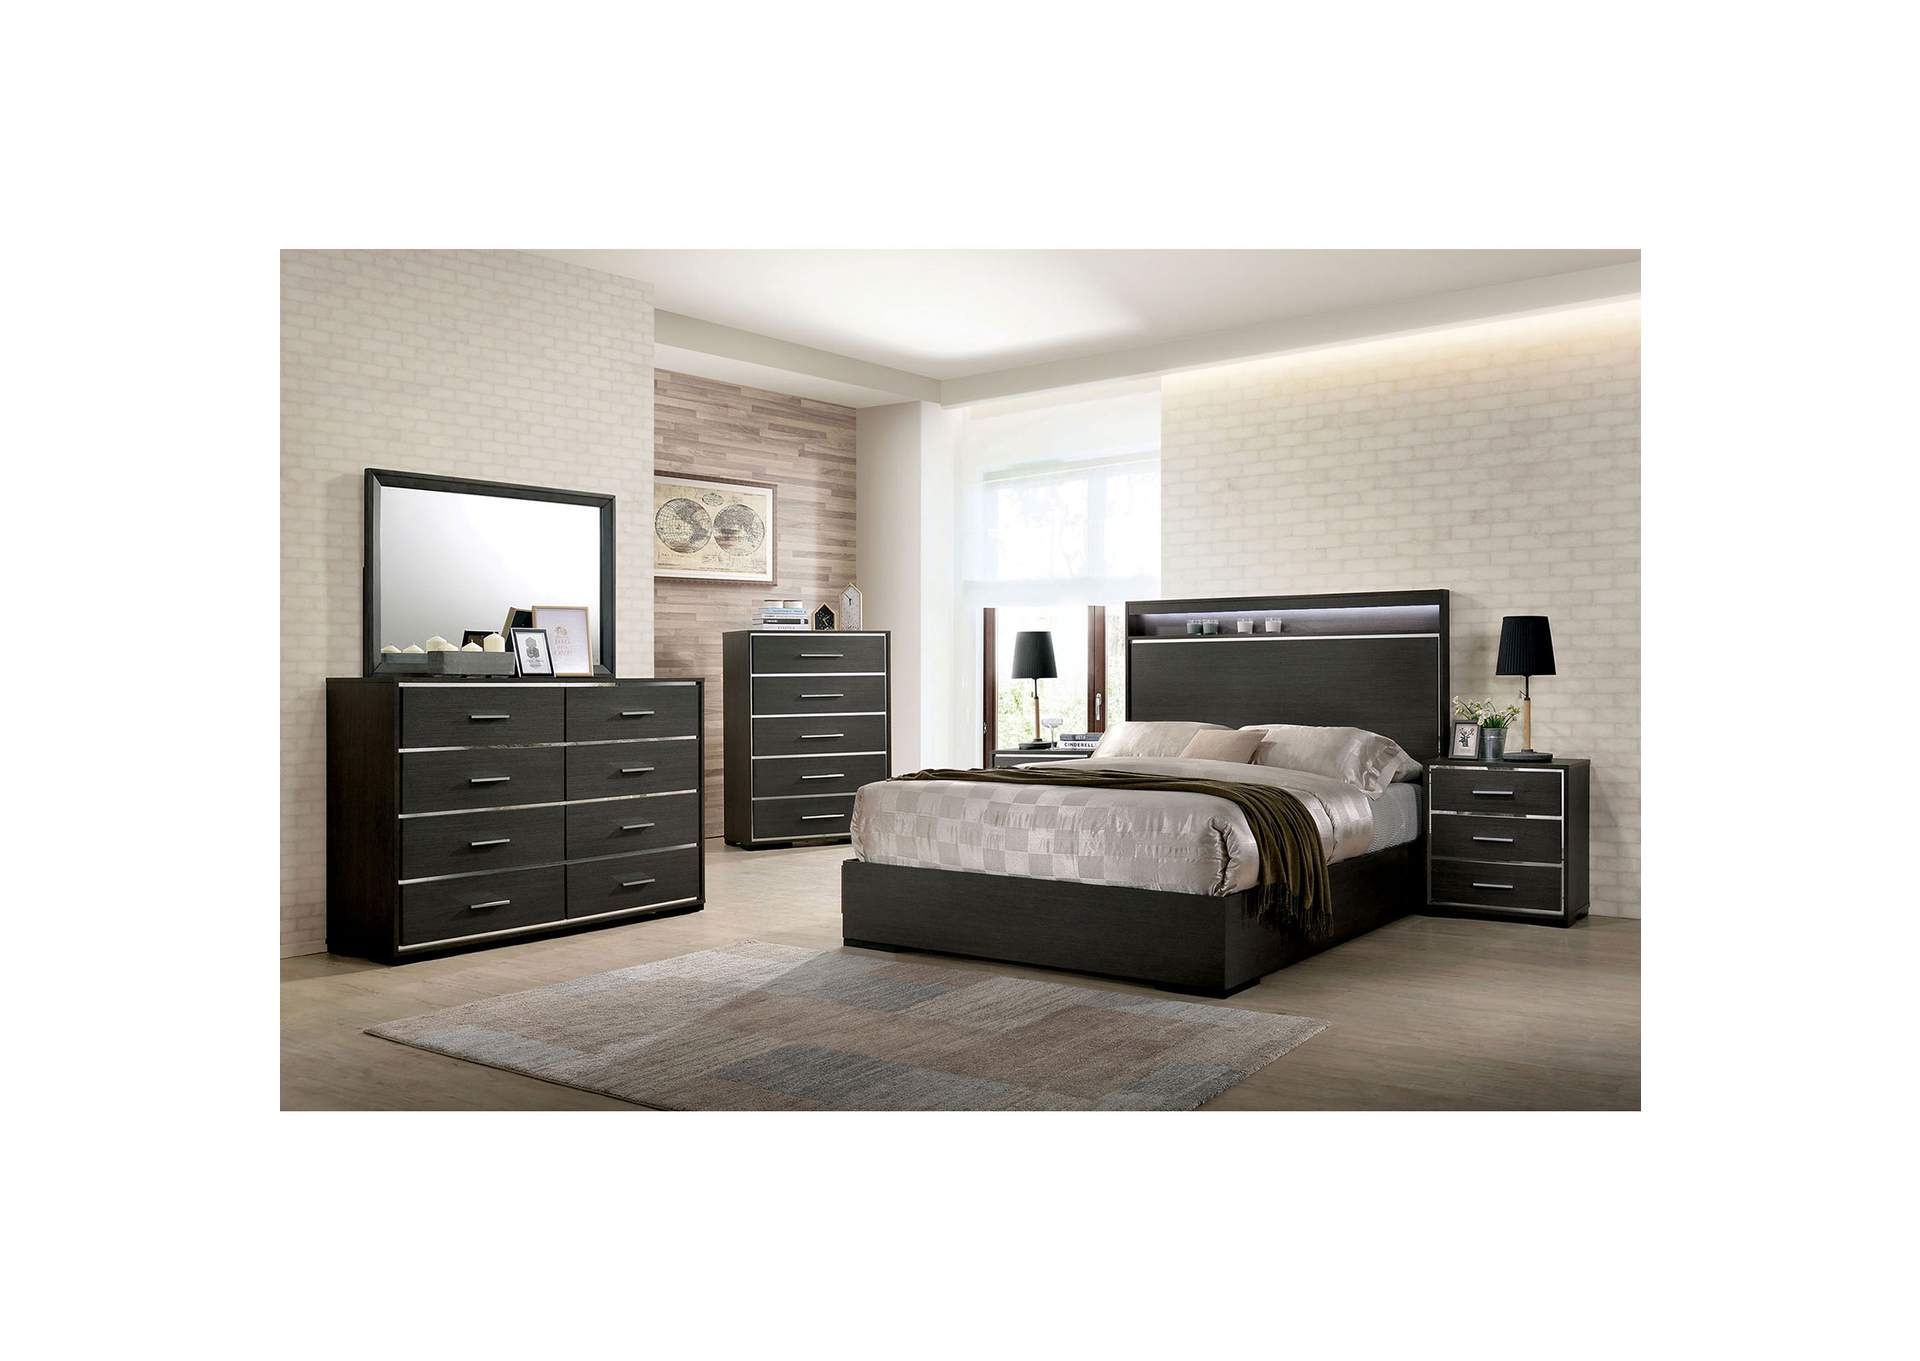 Camryn Warm Gray Eastern King Platform Bed w/LED Lights and Chrome Trim,Furniture of America